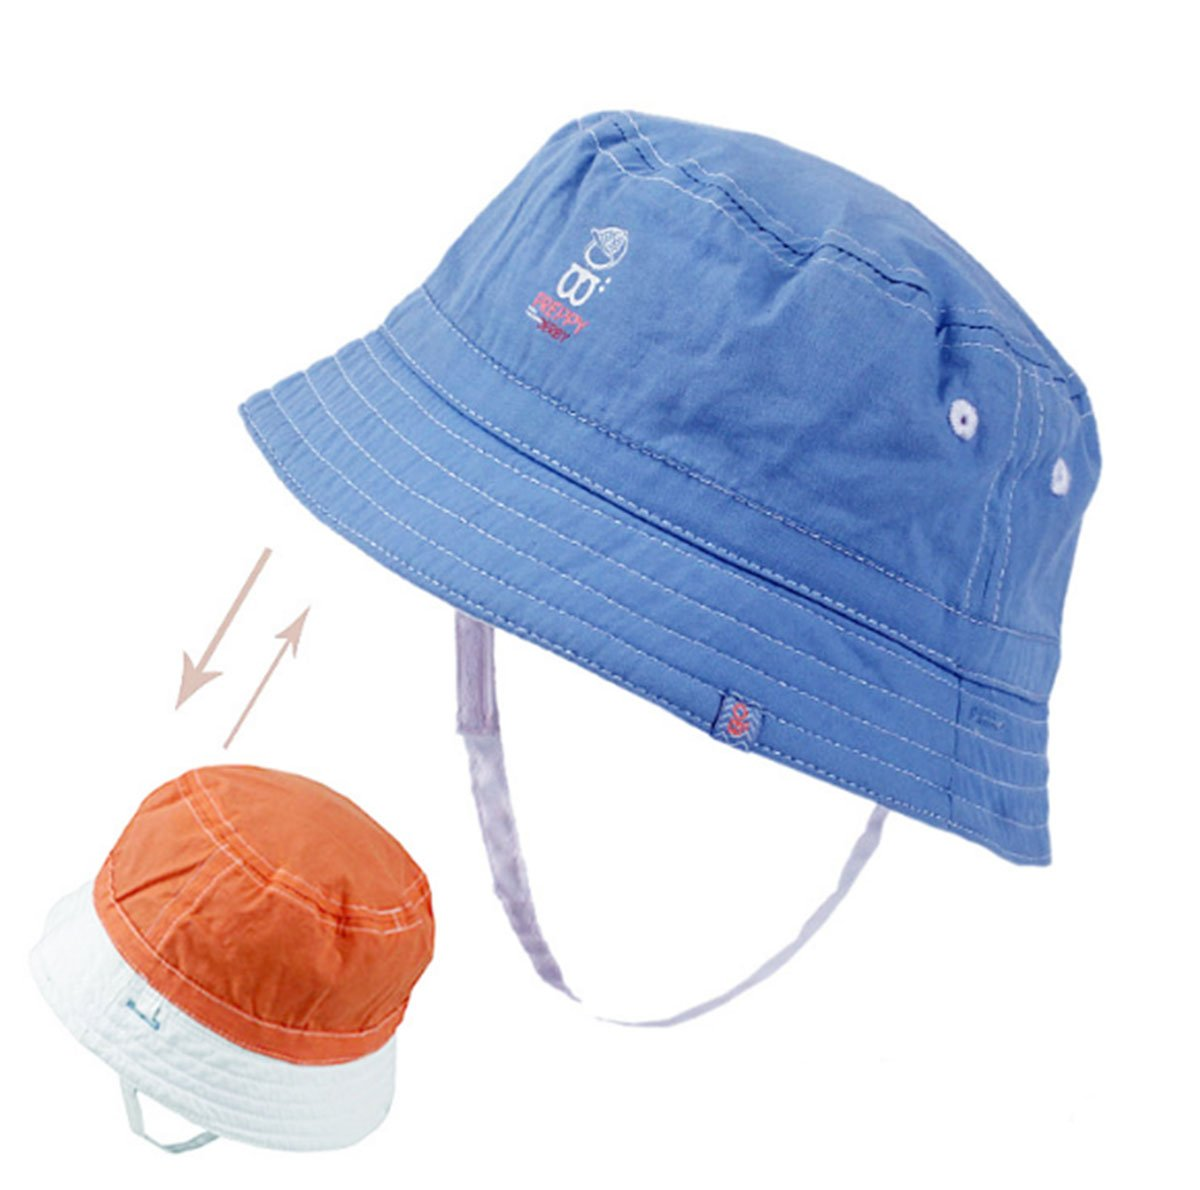 Sun Caps 2-in-1 Baby Sun Hats, Baby and Toddler Girls and Boys